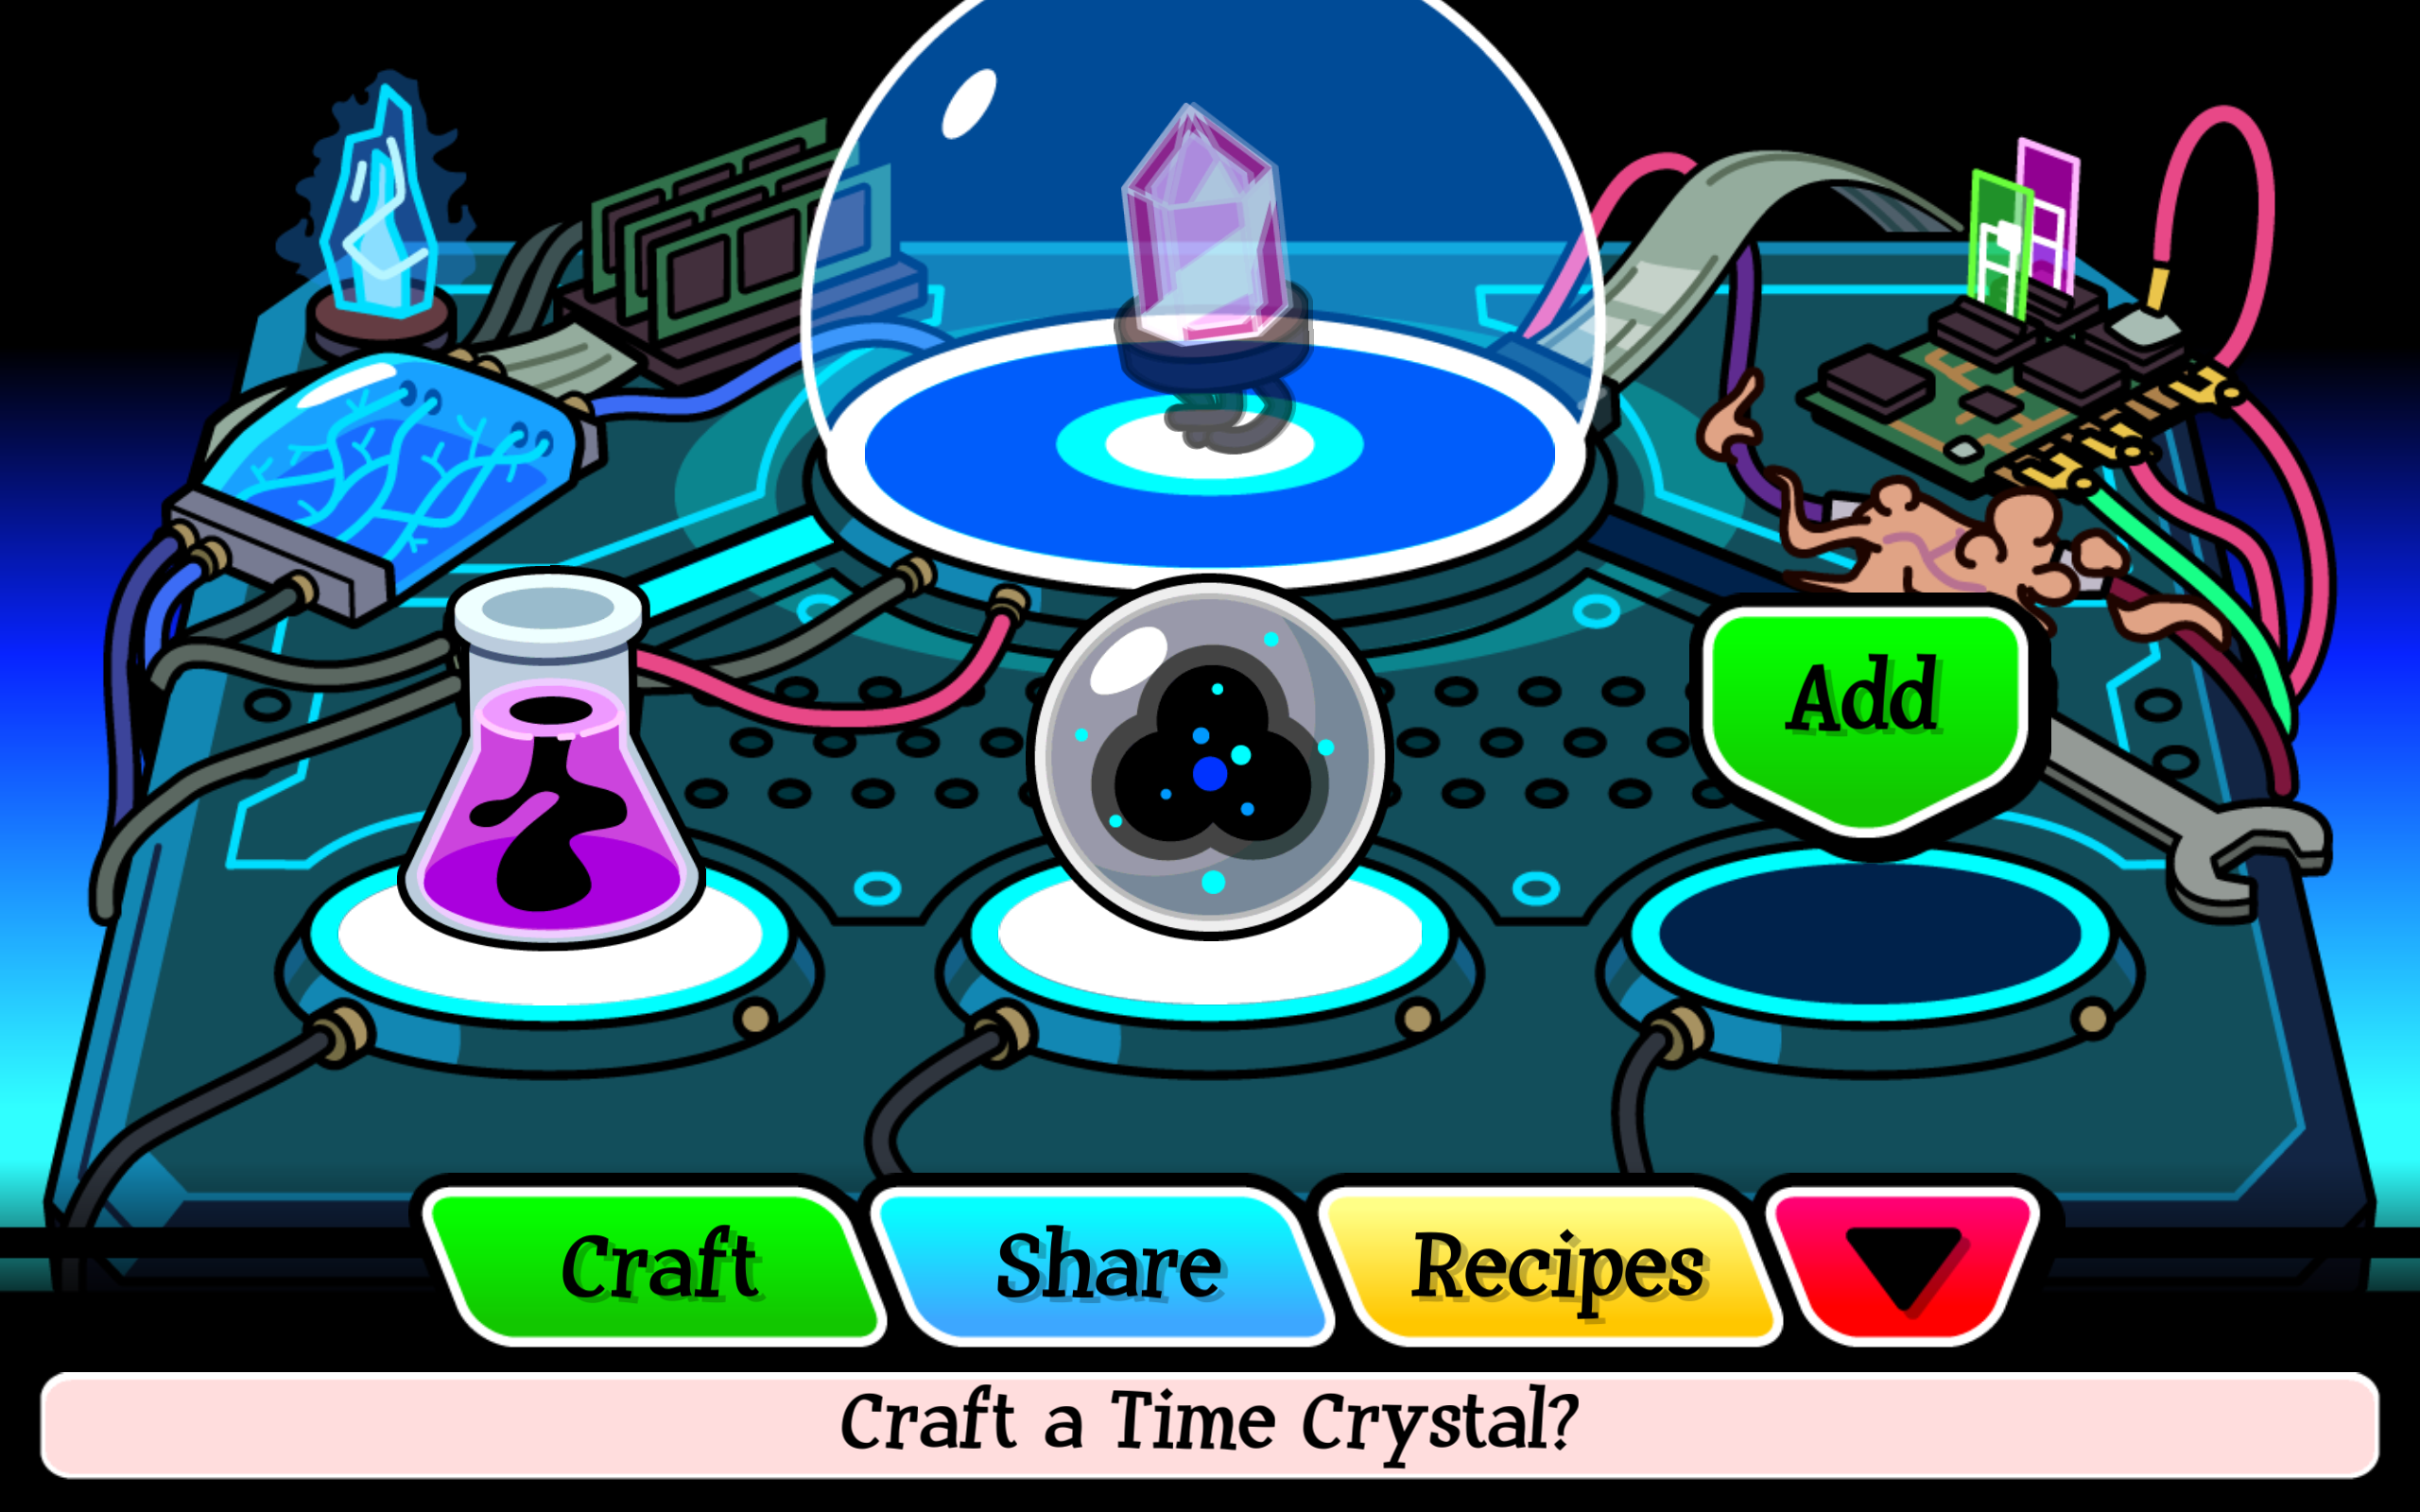 24. Time Crystal